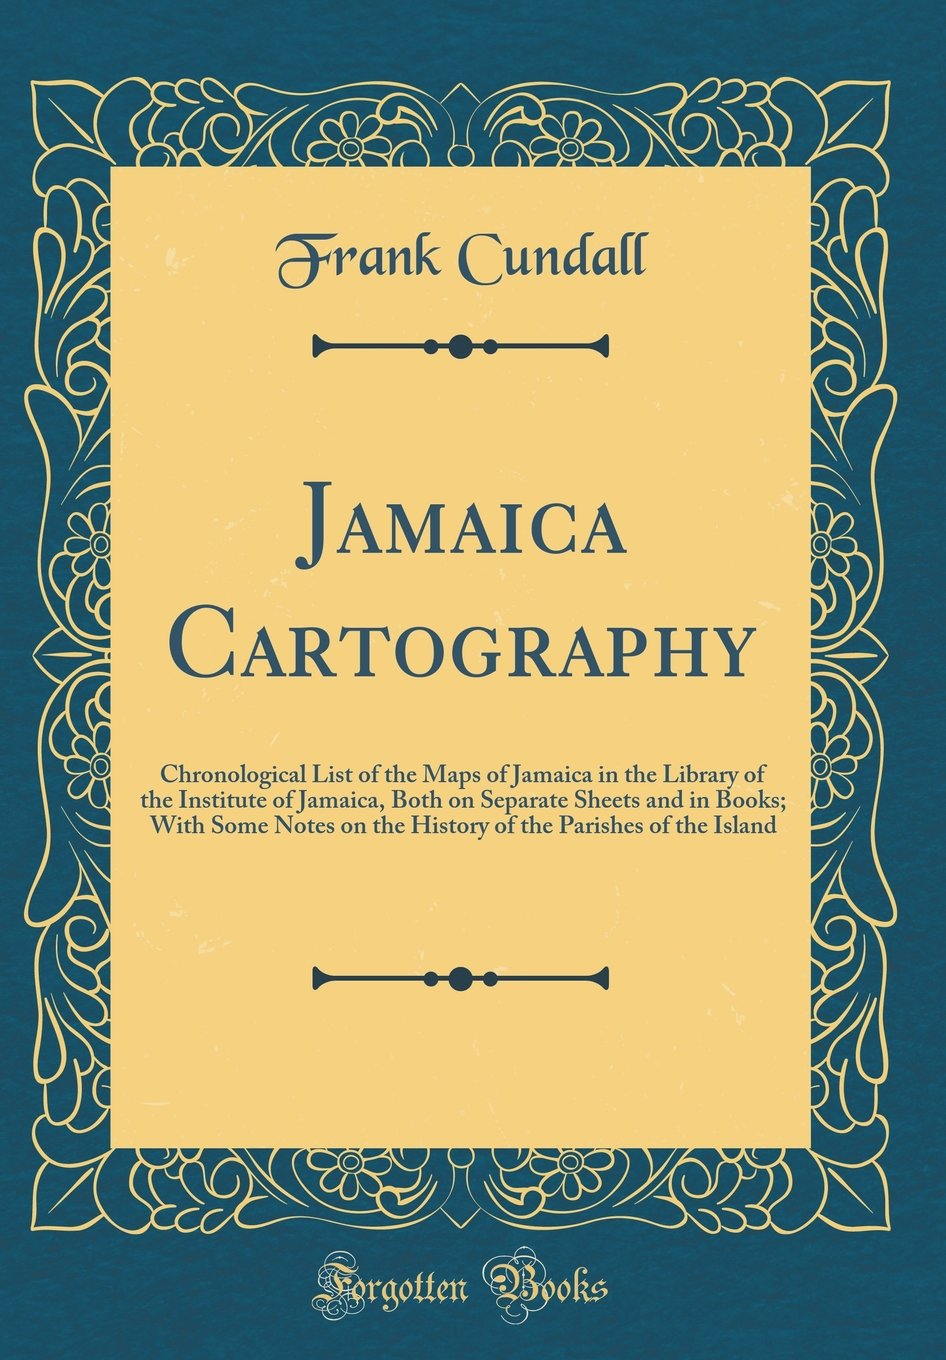 Jamaica Cartography: Chronological List of the Maps of Jamaica in the Library of the Institute of Jamaica, Both on Separate Sheets and in Books; With ... the Parishes of the Island (Classic Reprint)